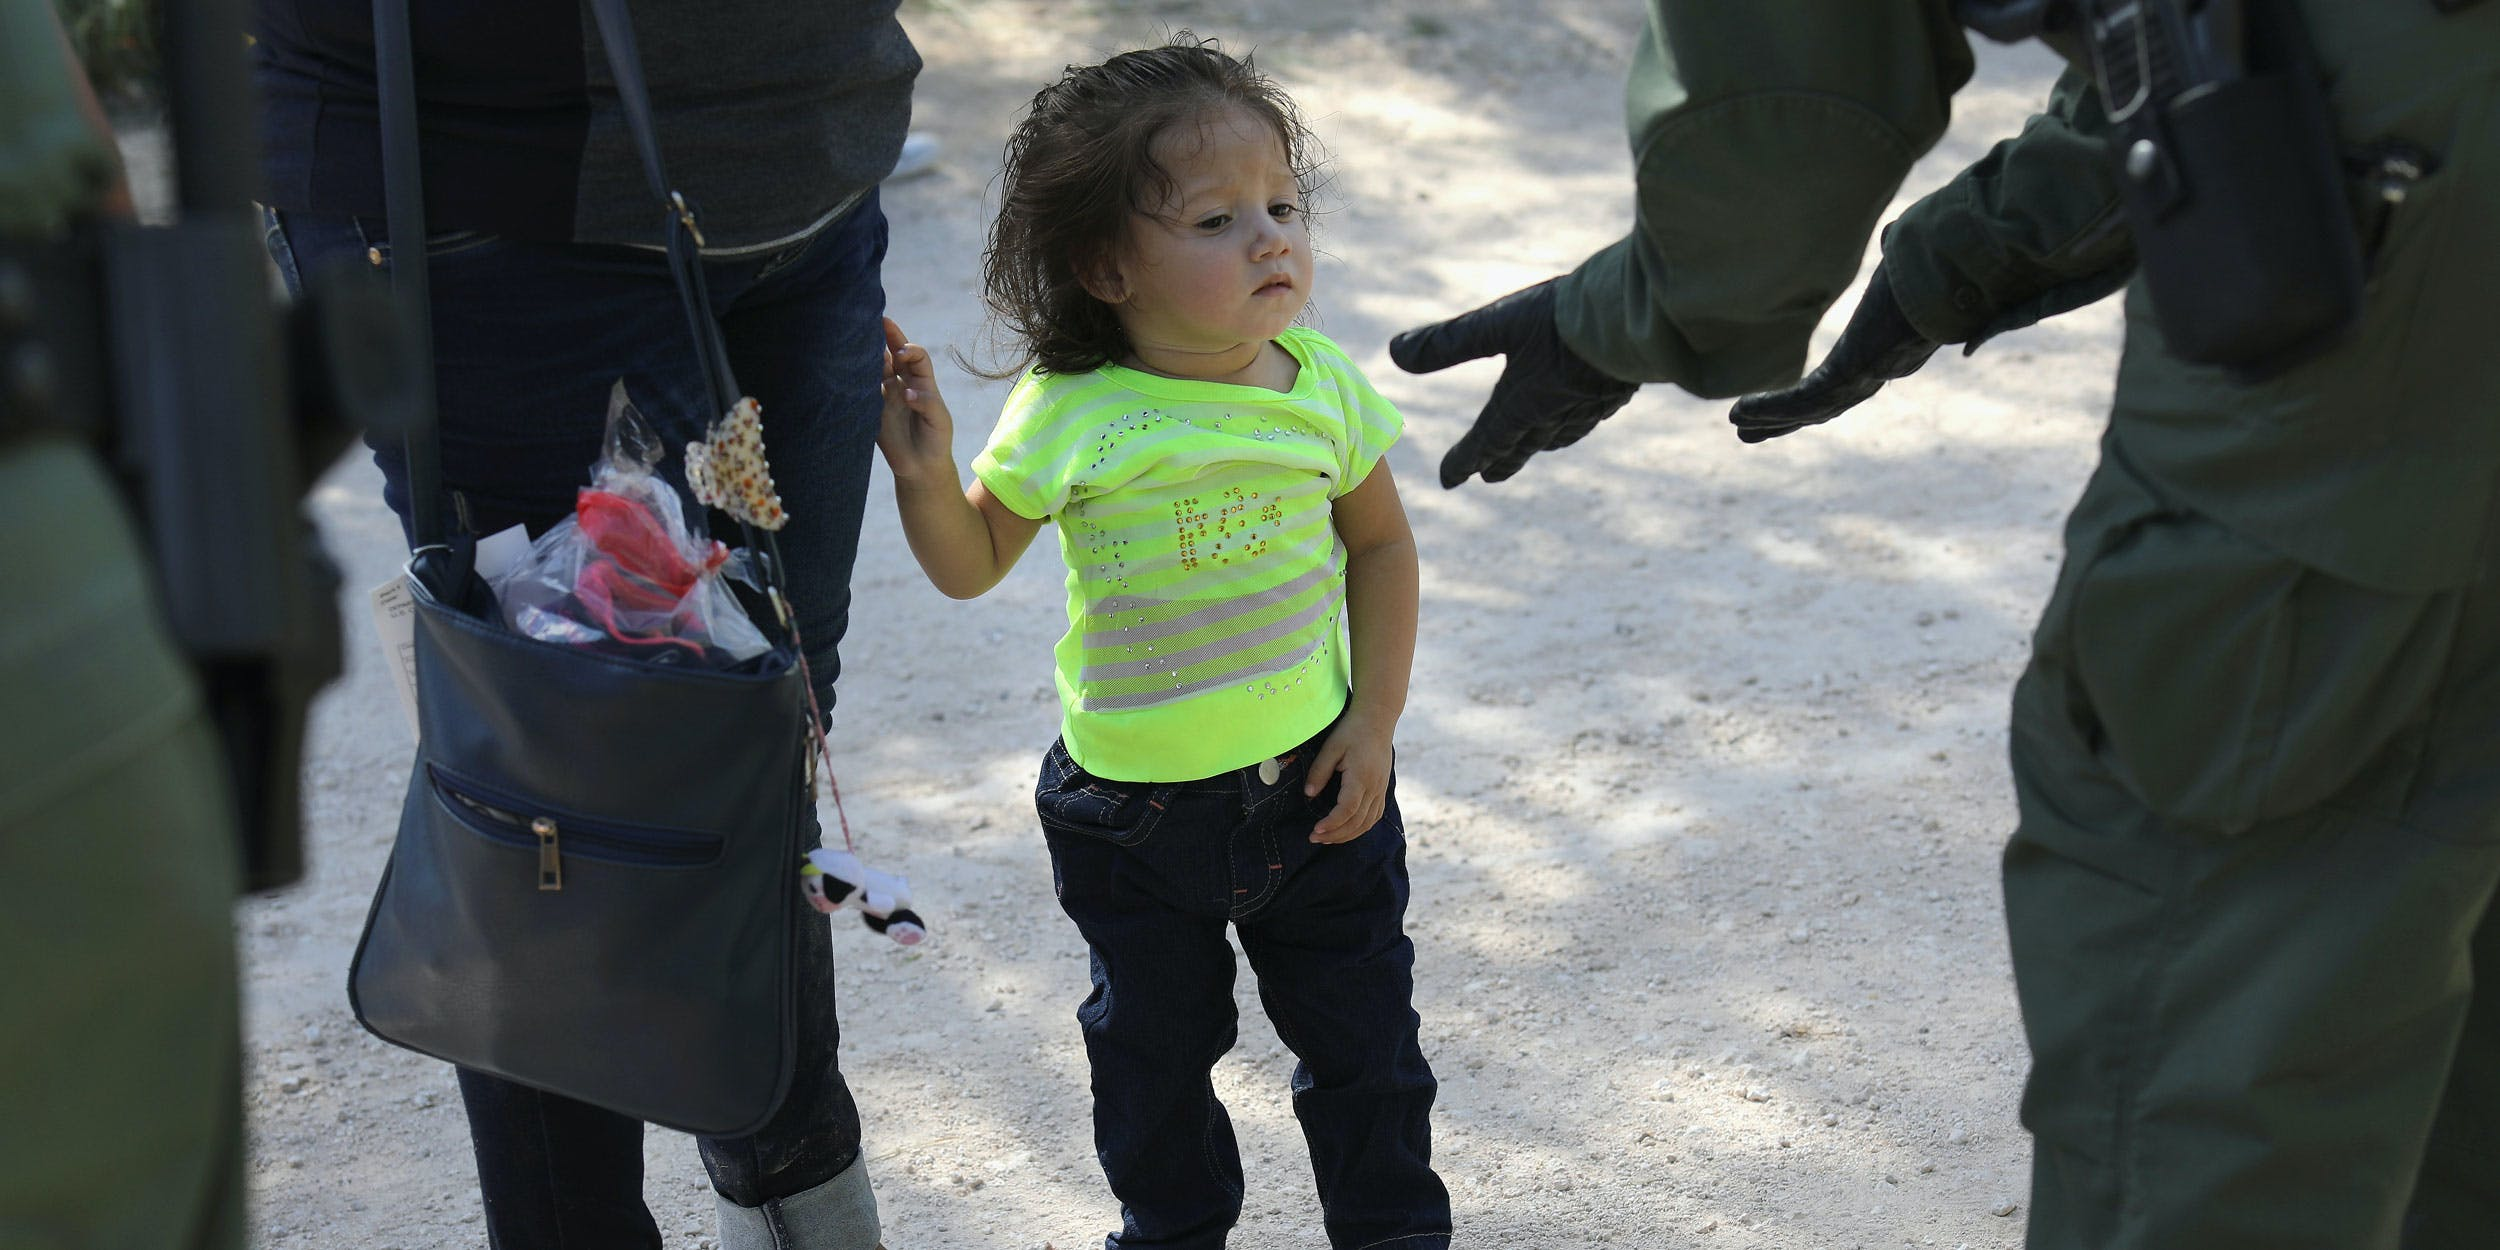 U.S. Border Patrol agents take Central American asylum seekers into custody on June 12, 2018 near McAllen, Texas. The immigrant families were then sent to a U.S. Customs and Border Protection (CBP) processing center for possible separation. U.S. border authorities are executing the Trump administration's zero tolerance policy towards undocumented migrants. (Photo by John Moore/Getty Images)